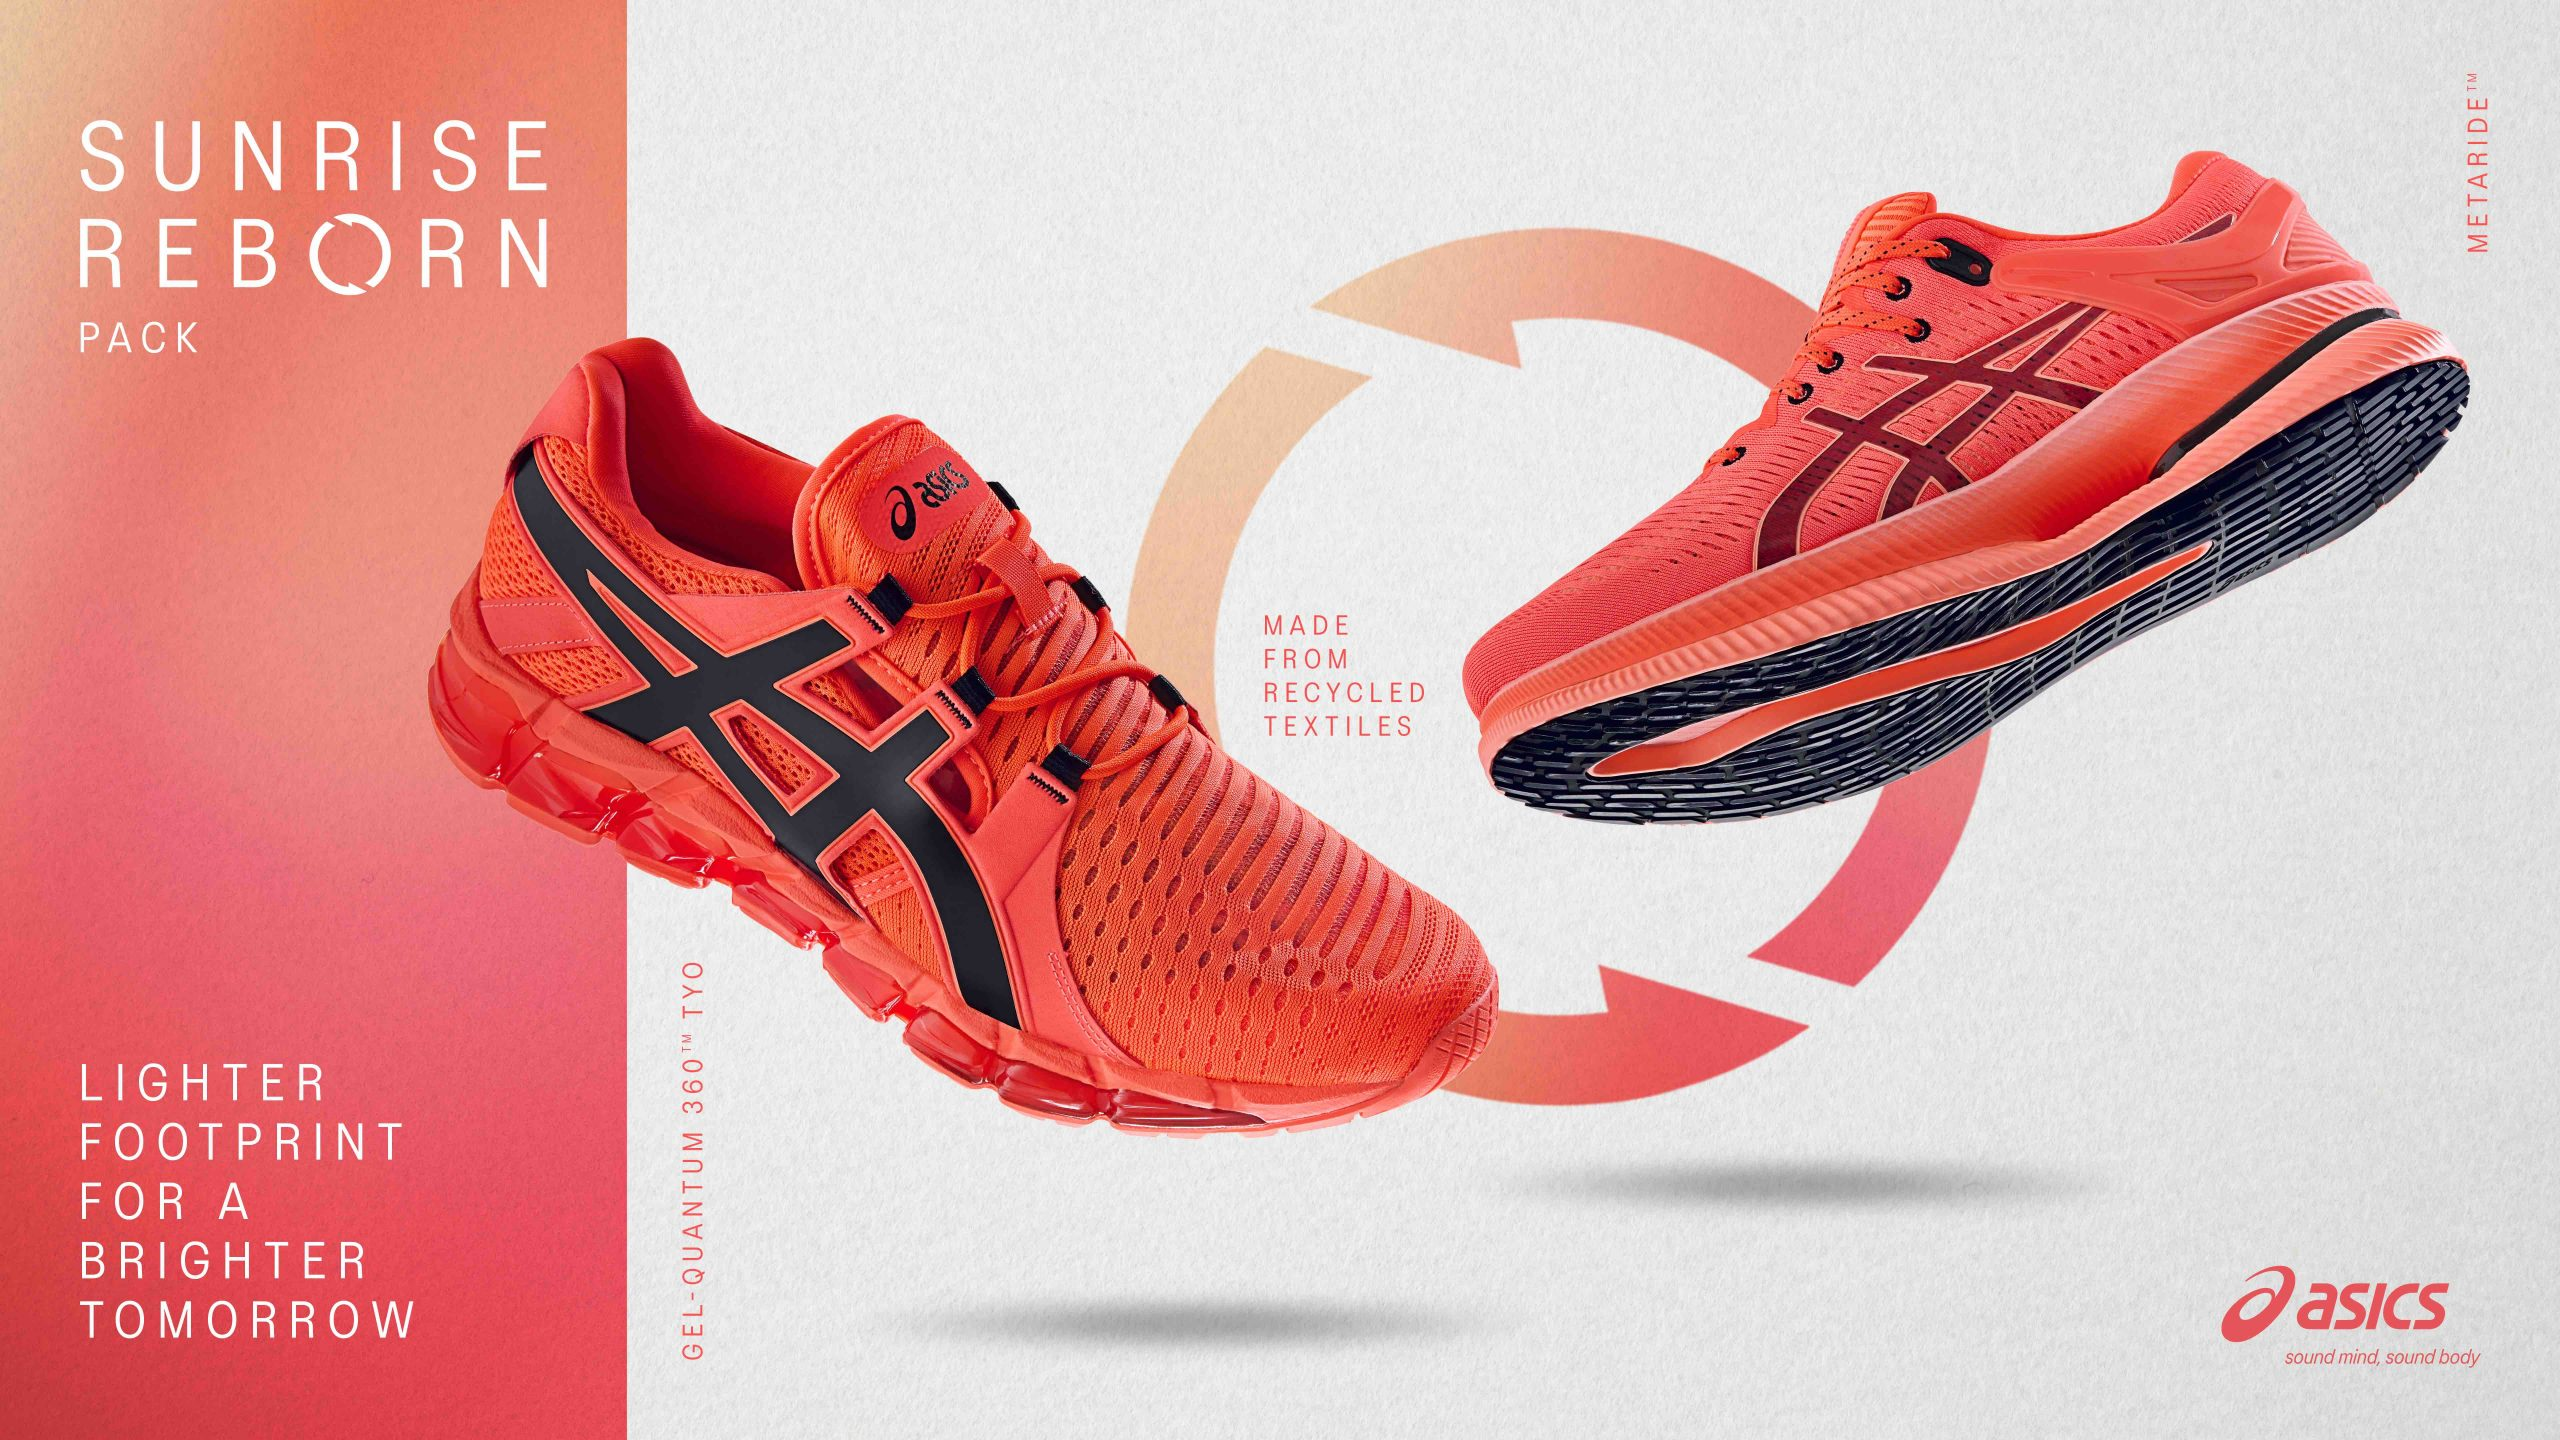 ASICS launch trainers made from recycled clothing